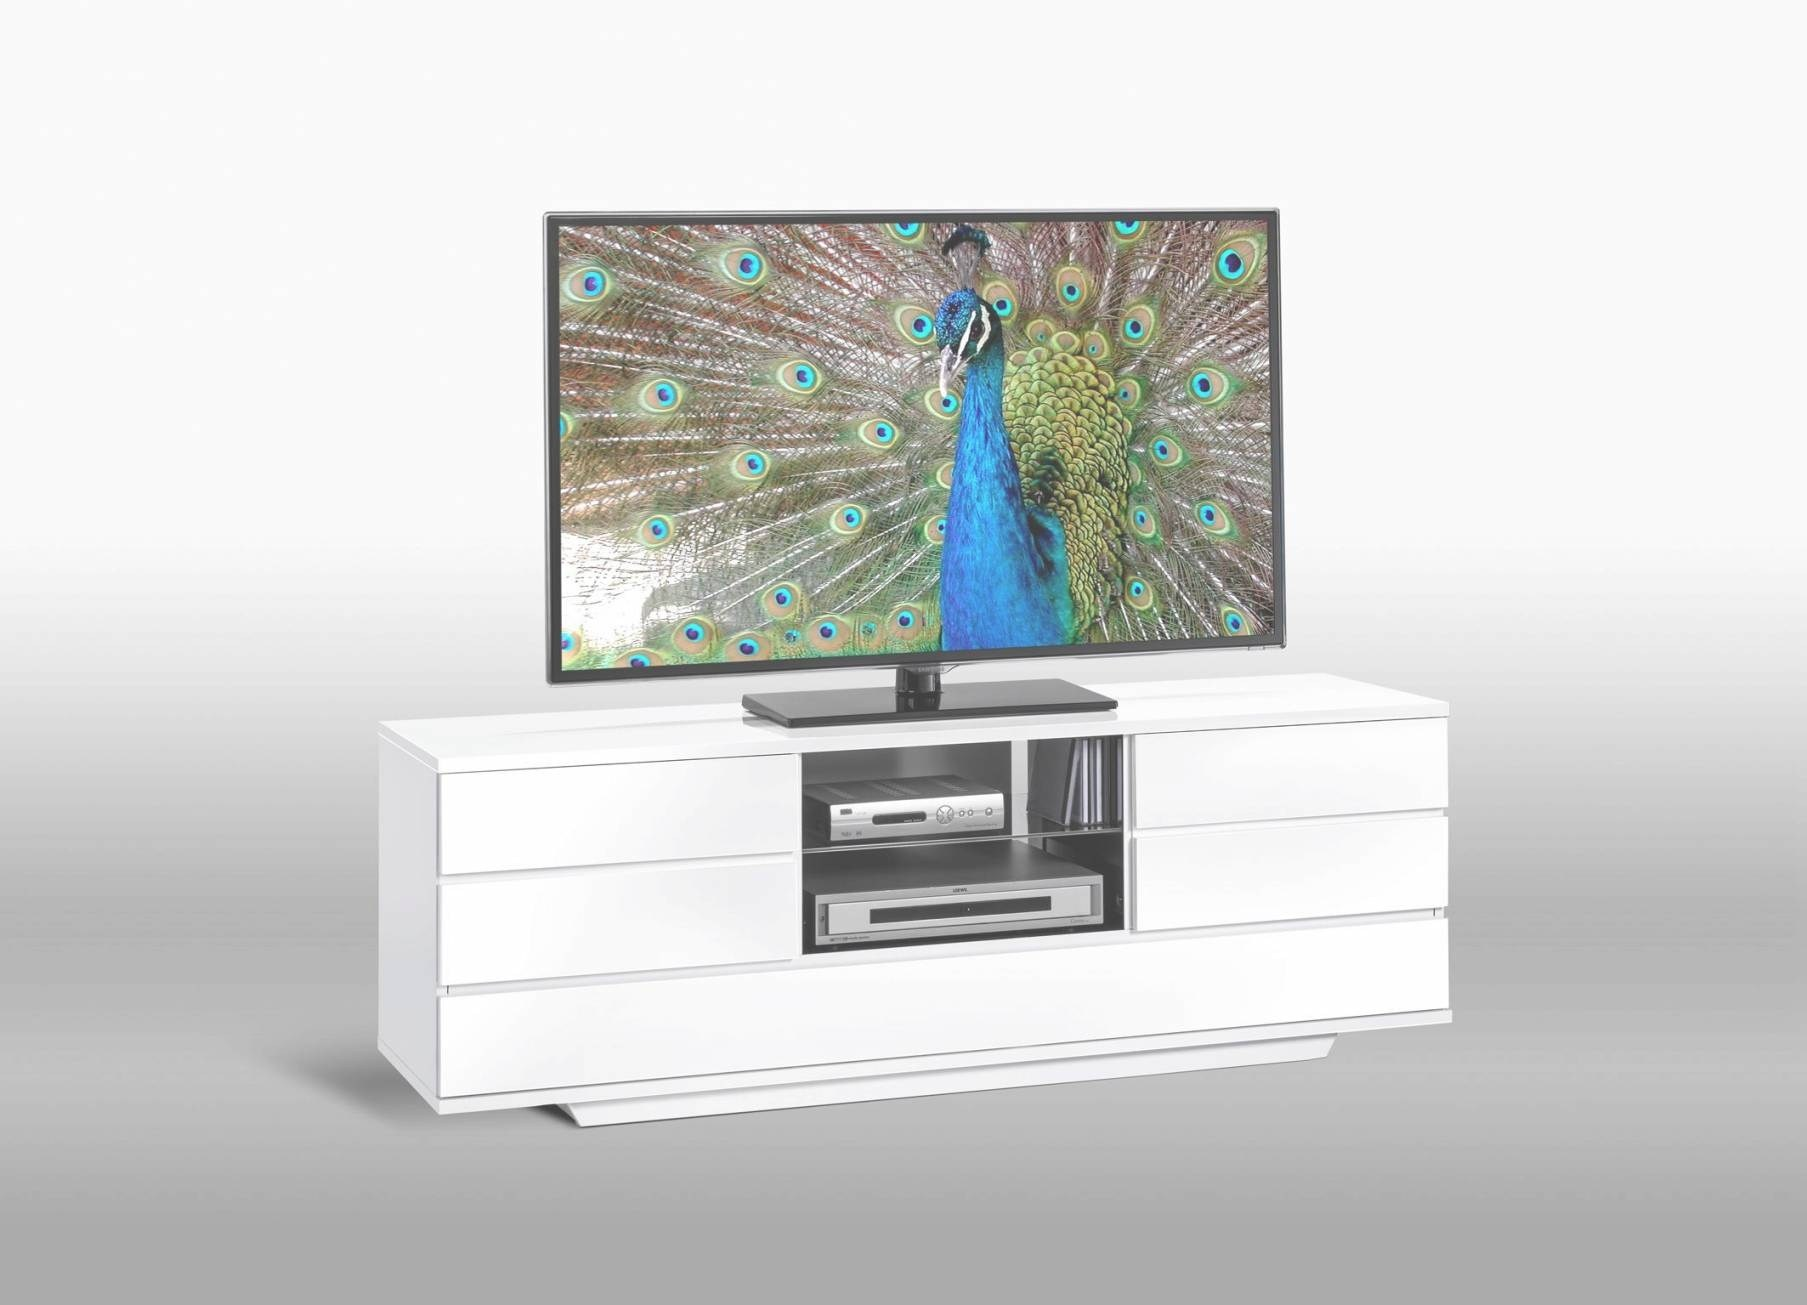 Meuble Tele Bas Blanc Meuble Tv Design Suspendu Larmo New Blanc  # Adhara Meuble Tv